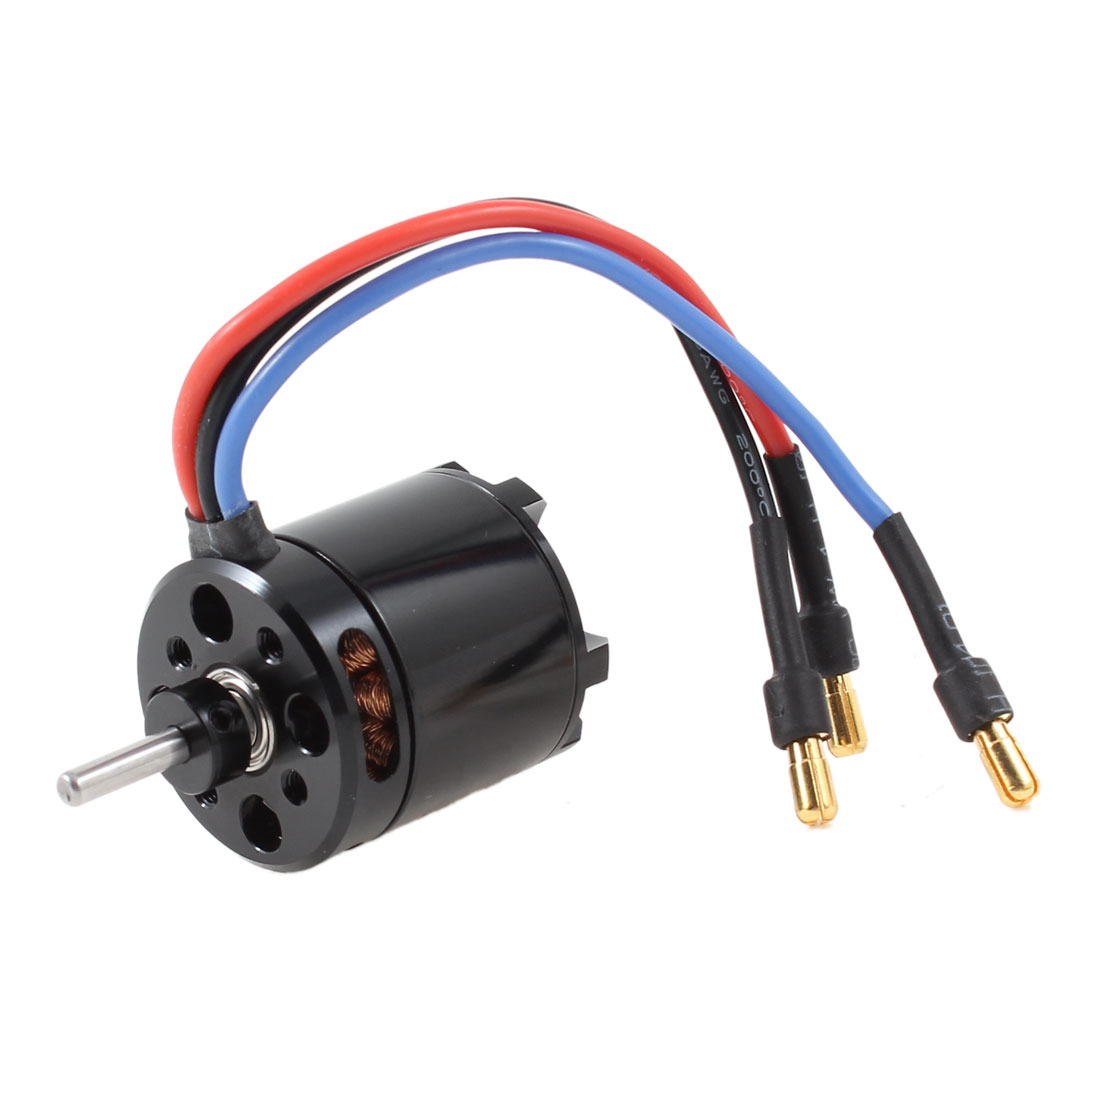 X2216-11 880KV Rotary Speed Brushless Outrunner Motor for RC Aircraft